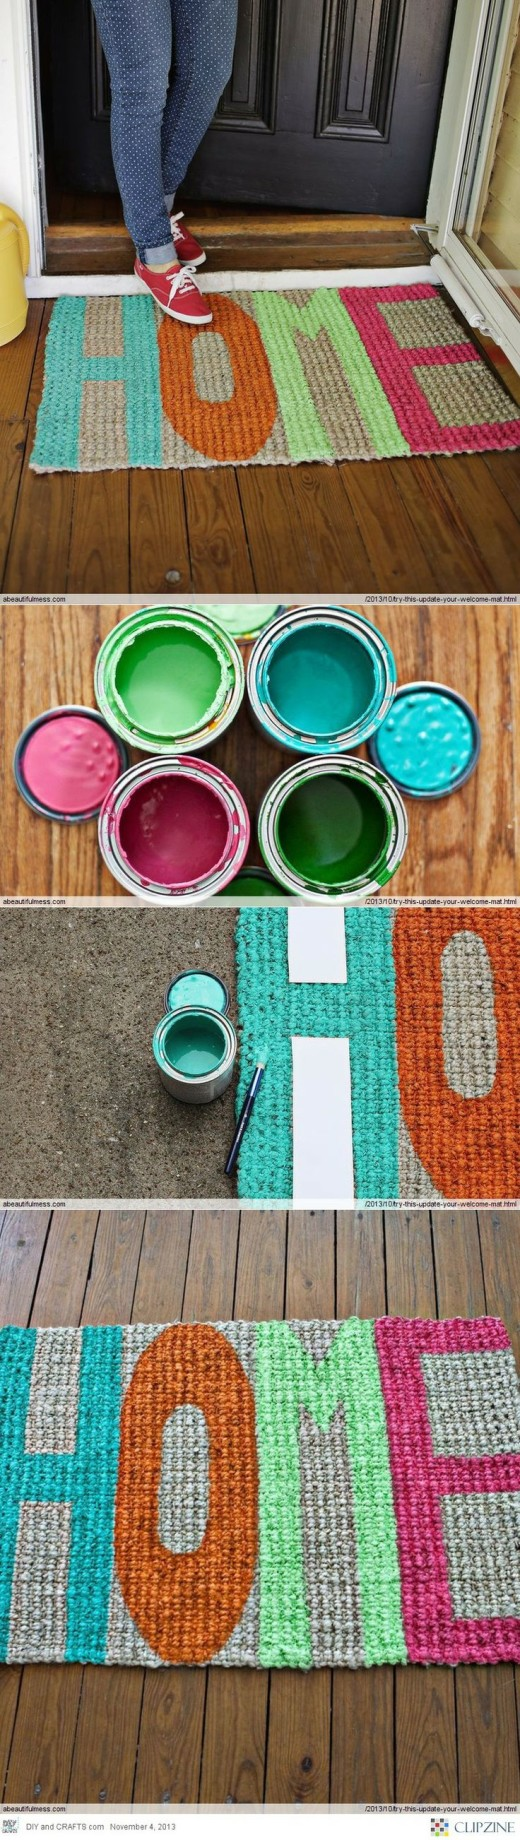 diy-welcome-mat-diy-home-decor-1383572060k84gn-520x1840